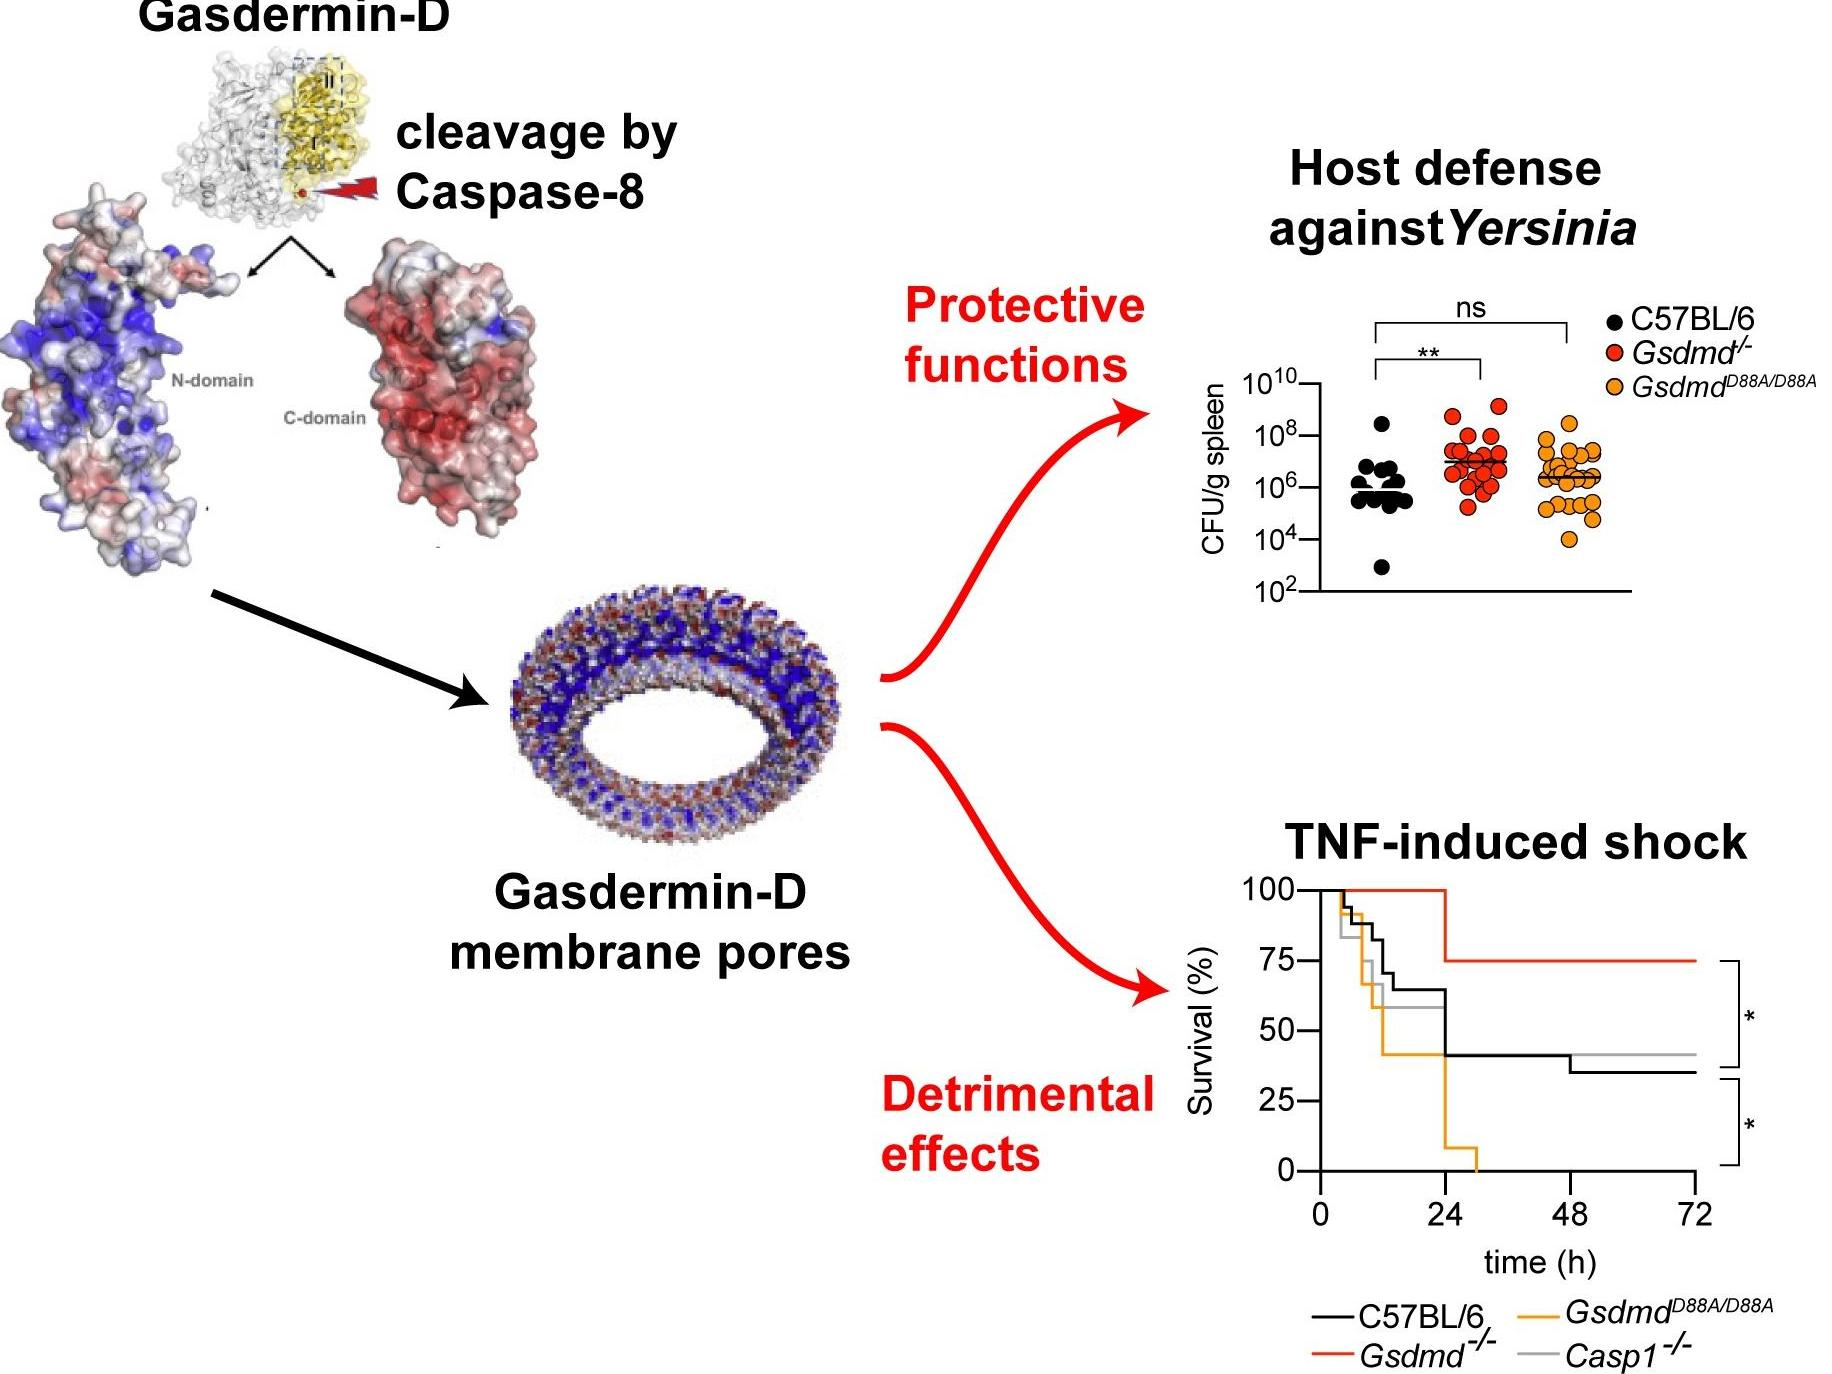 Cell death executor Gasdermin-D has both protective and detrimental functions